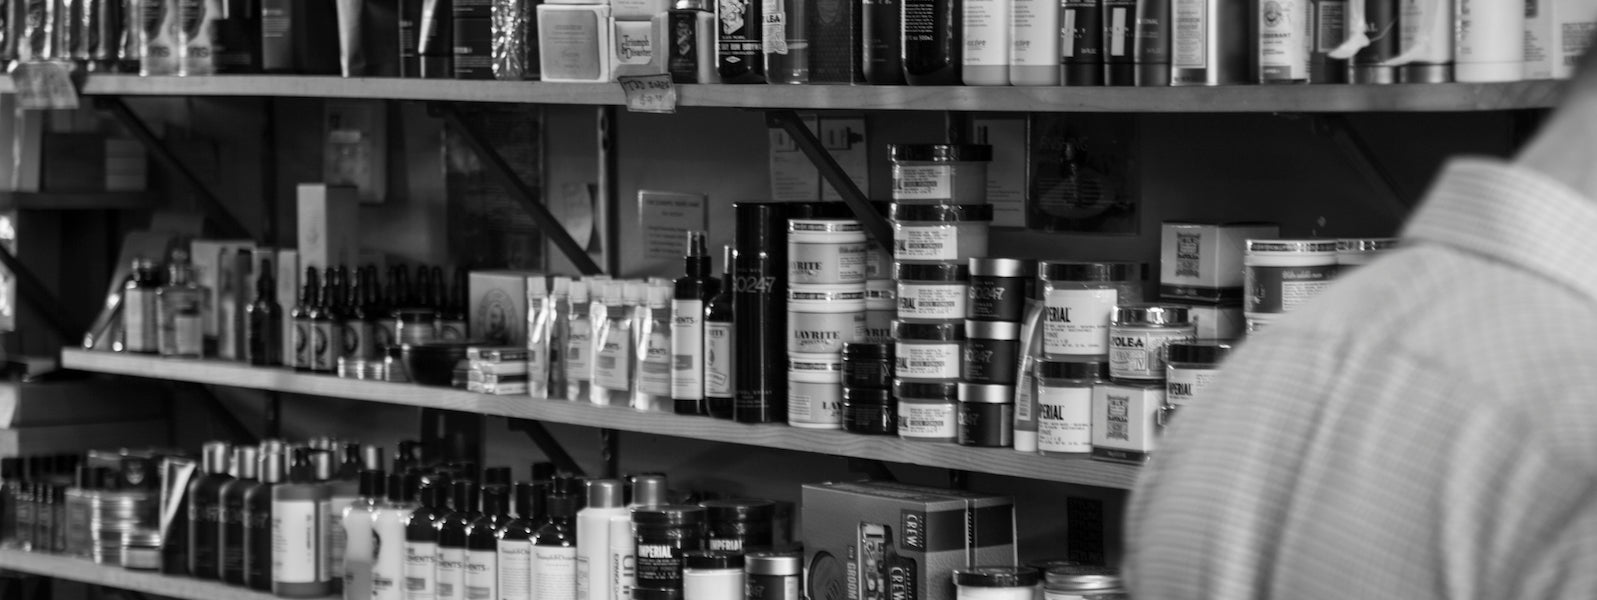 The extensive mens grooming product range available at The Emporium Barber